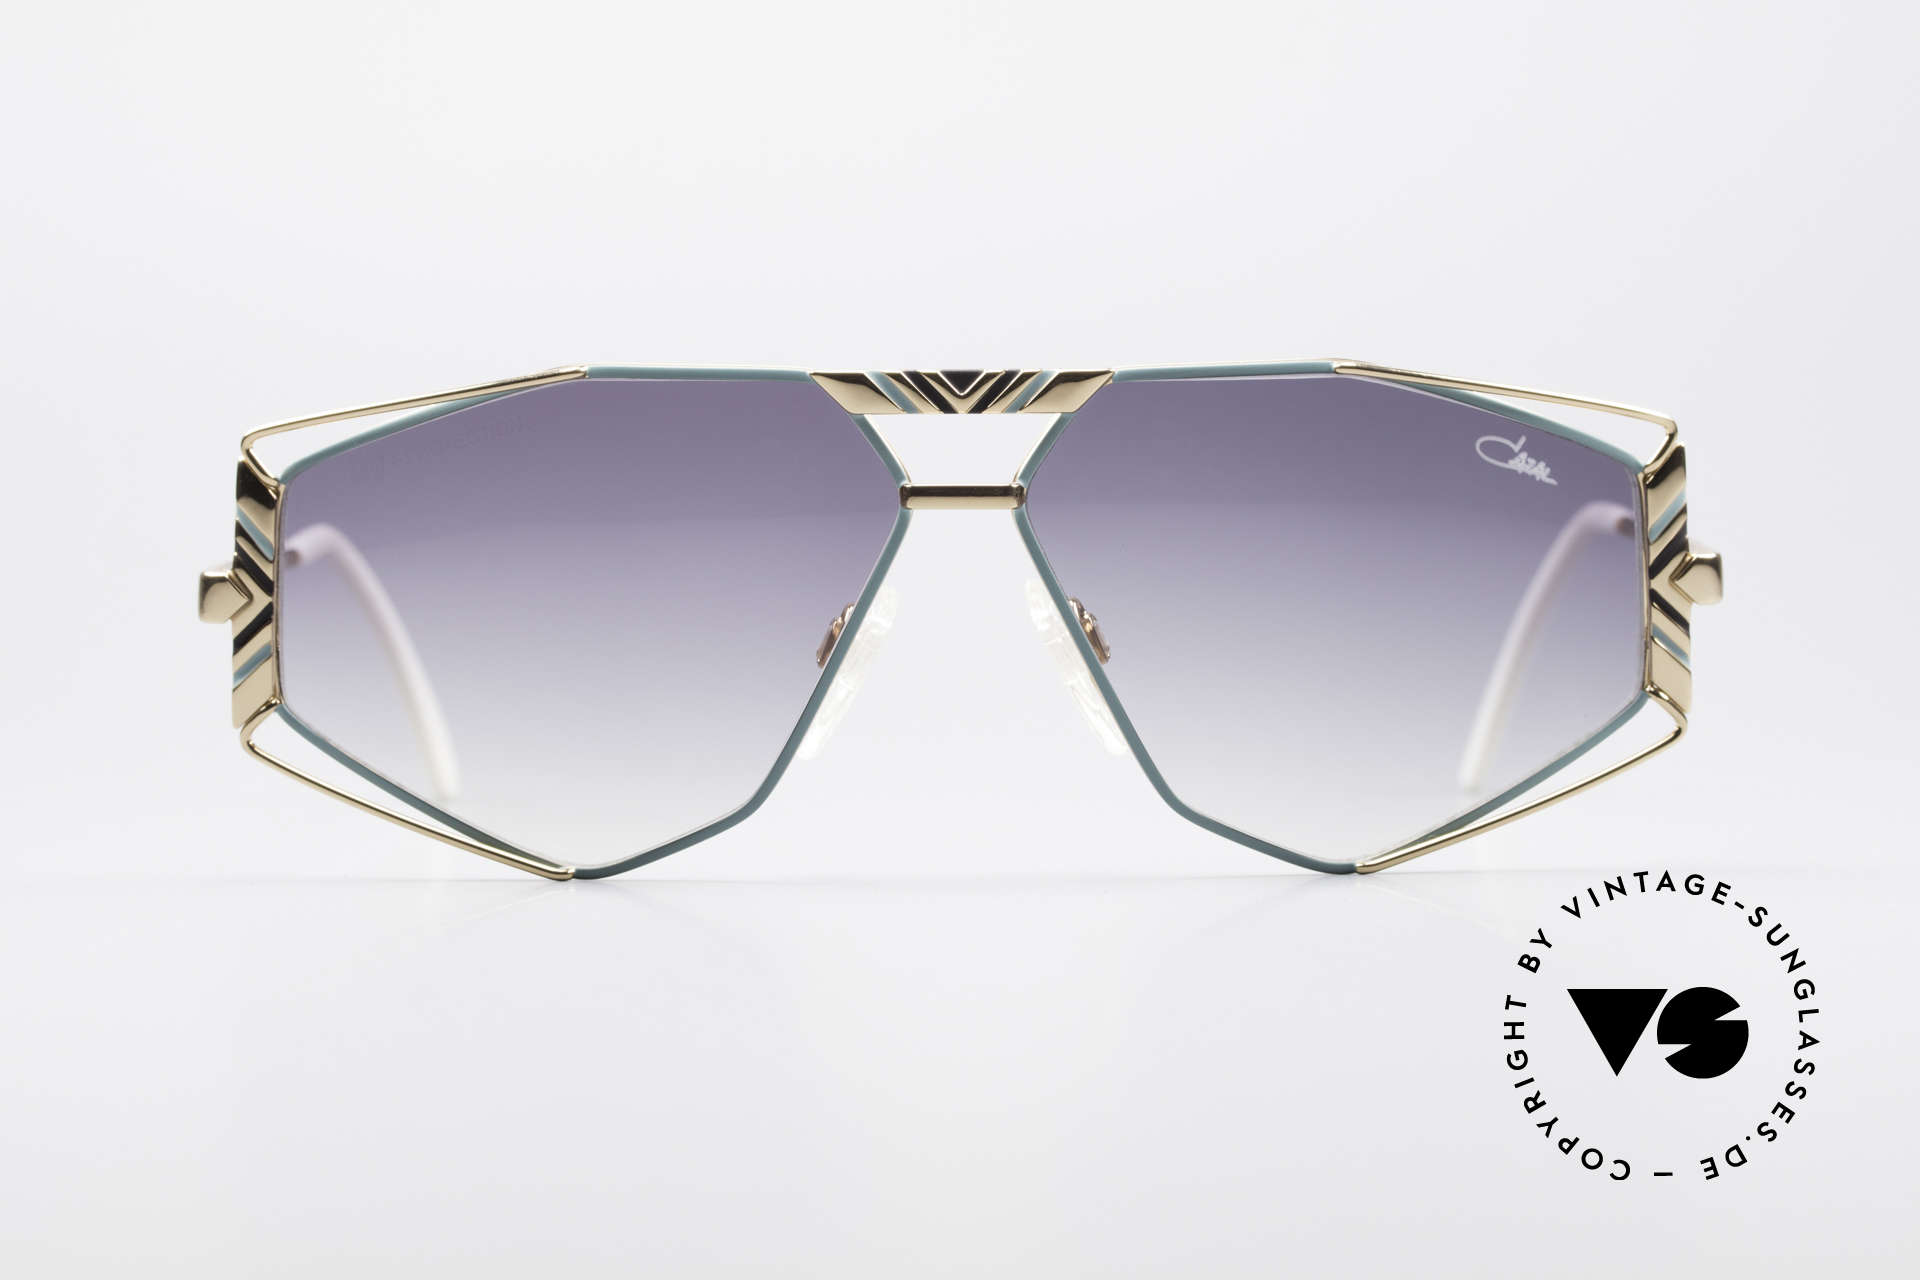 Cazal 956 Cari Zalloni Vintage Shades, fancy lens shape and many lovely frame details, Made for Men and Women